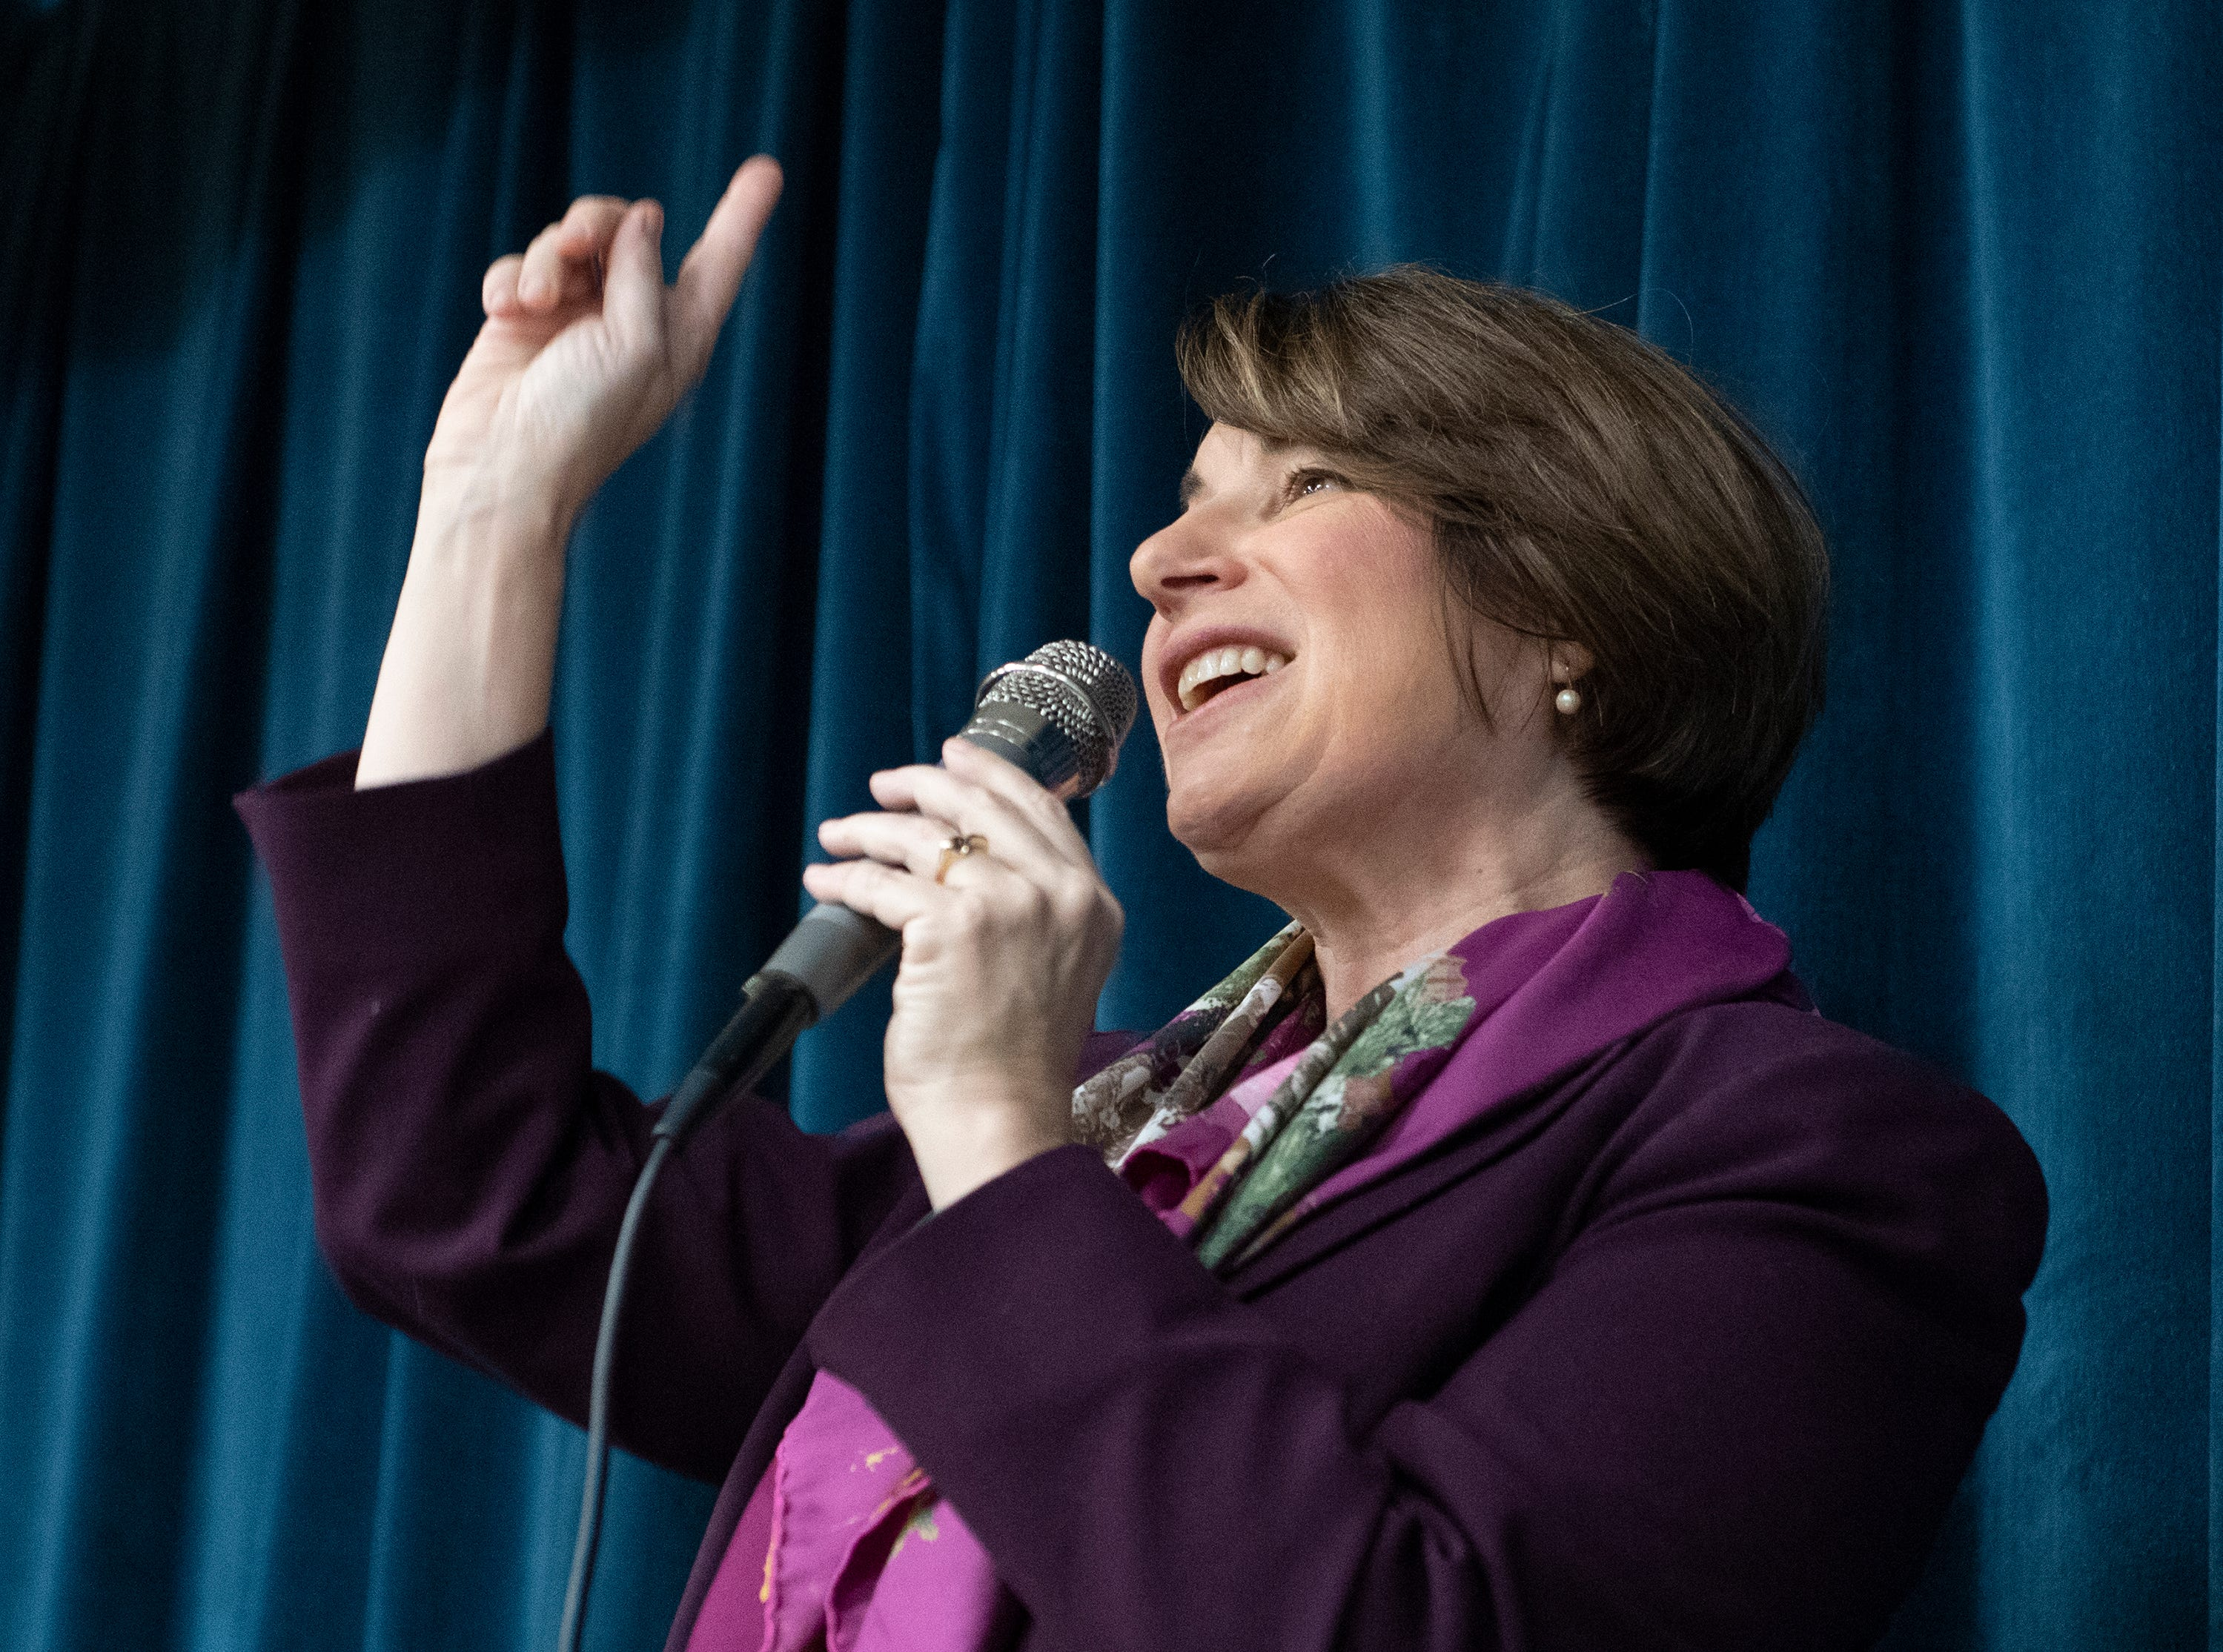 Sen. Amy Klobuchar talks to people gathered at Upstate Circle of Friends for the Greenville County Democratic Party's monthly breakfast Saturday, Feb. 23, 2019.